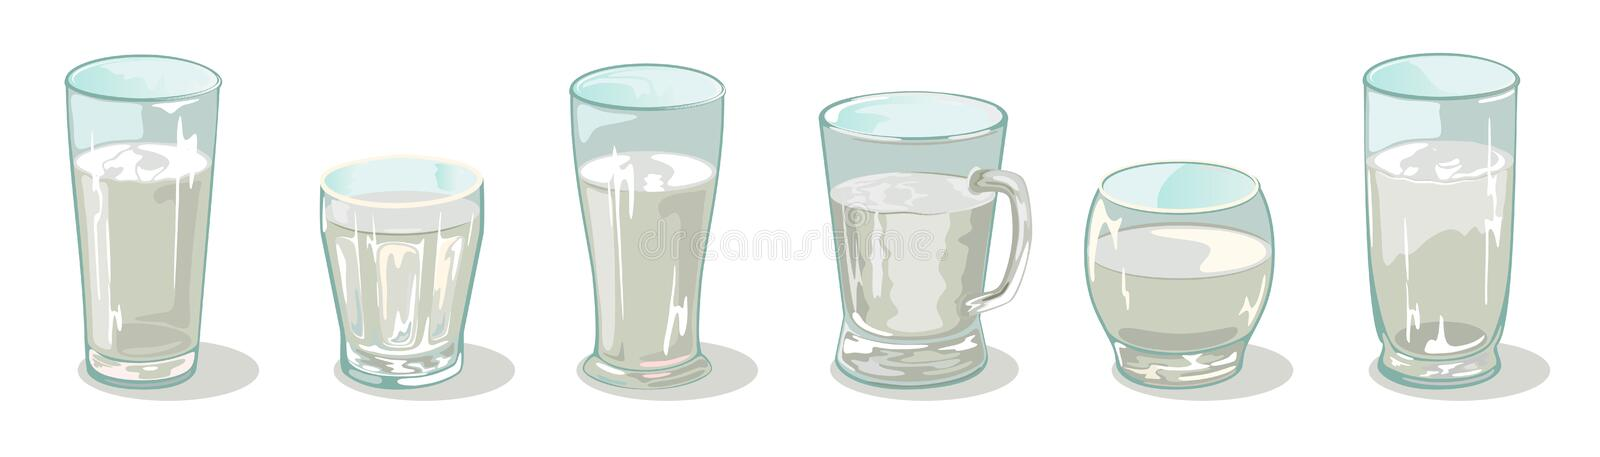 Vector set of different sized, shapes and heights glassware in line. Transparent cups, glasses, mug. royalty free illustration